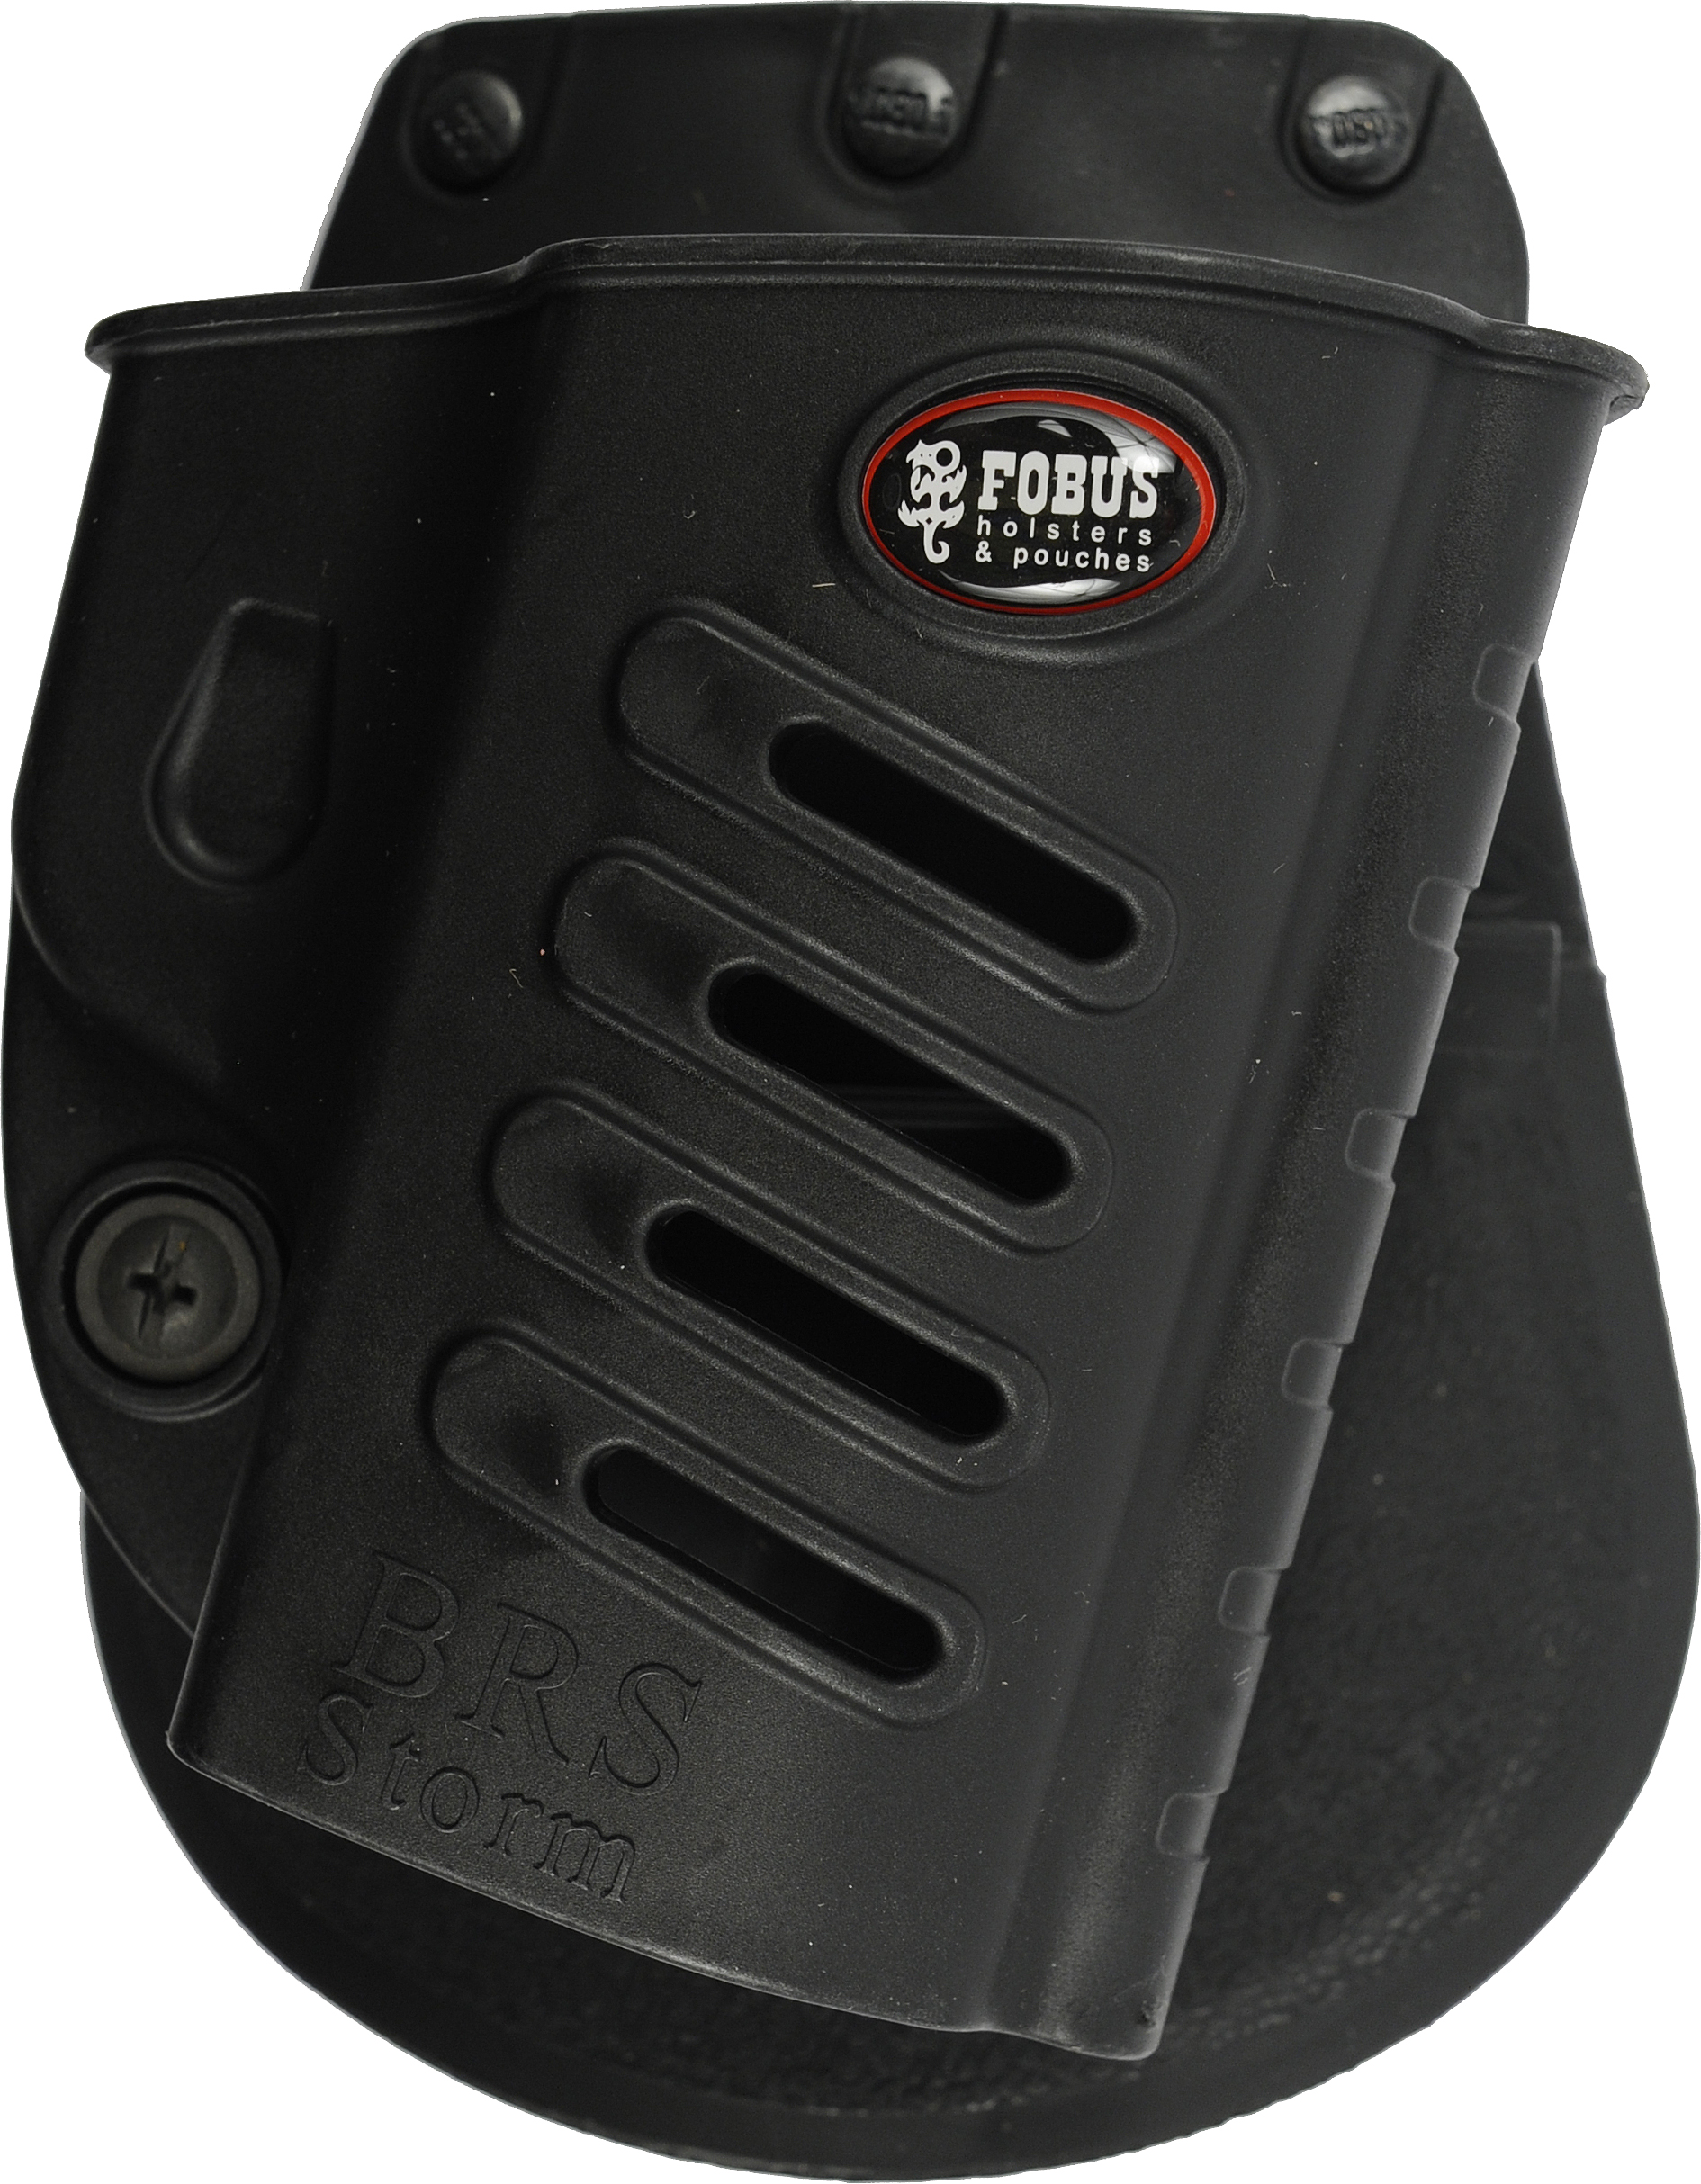 Fobus Evolution Paddle Holster for Beretta PX4 Storm Holsters